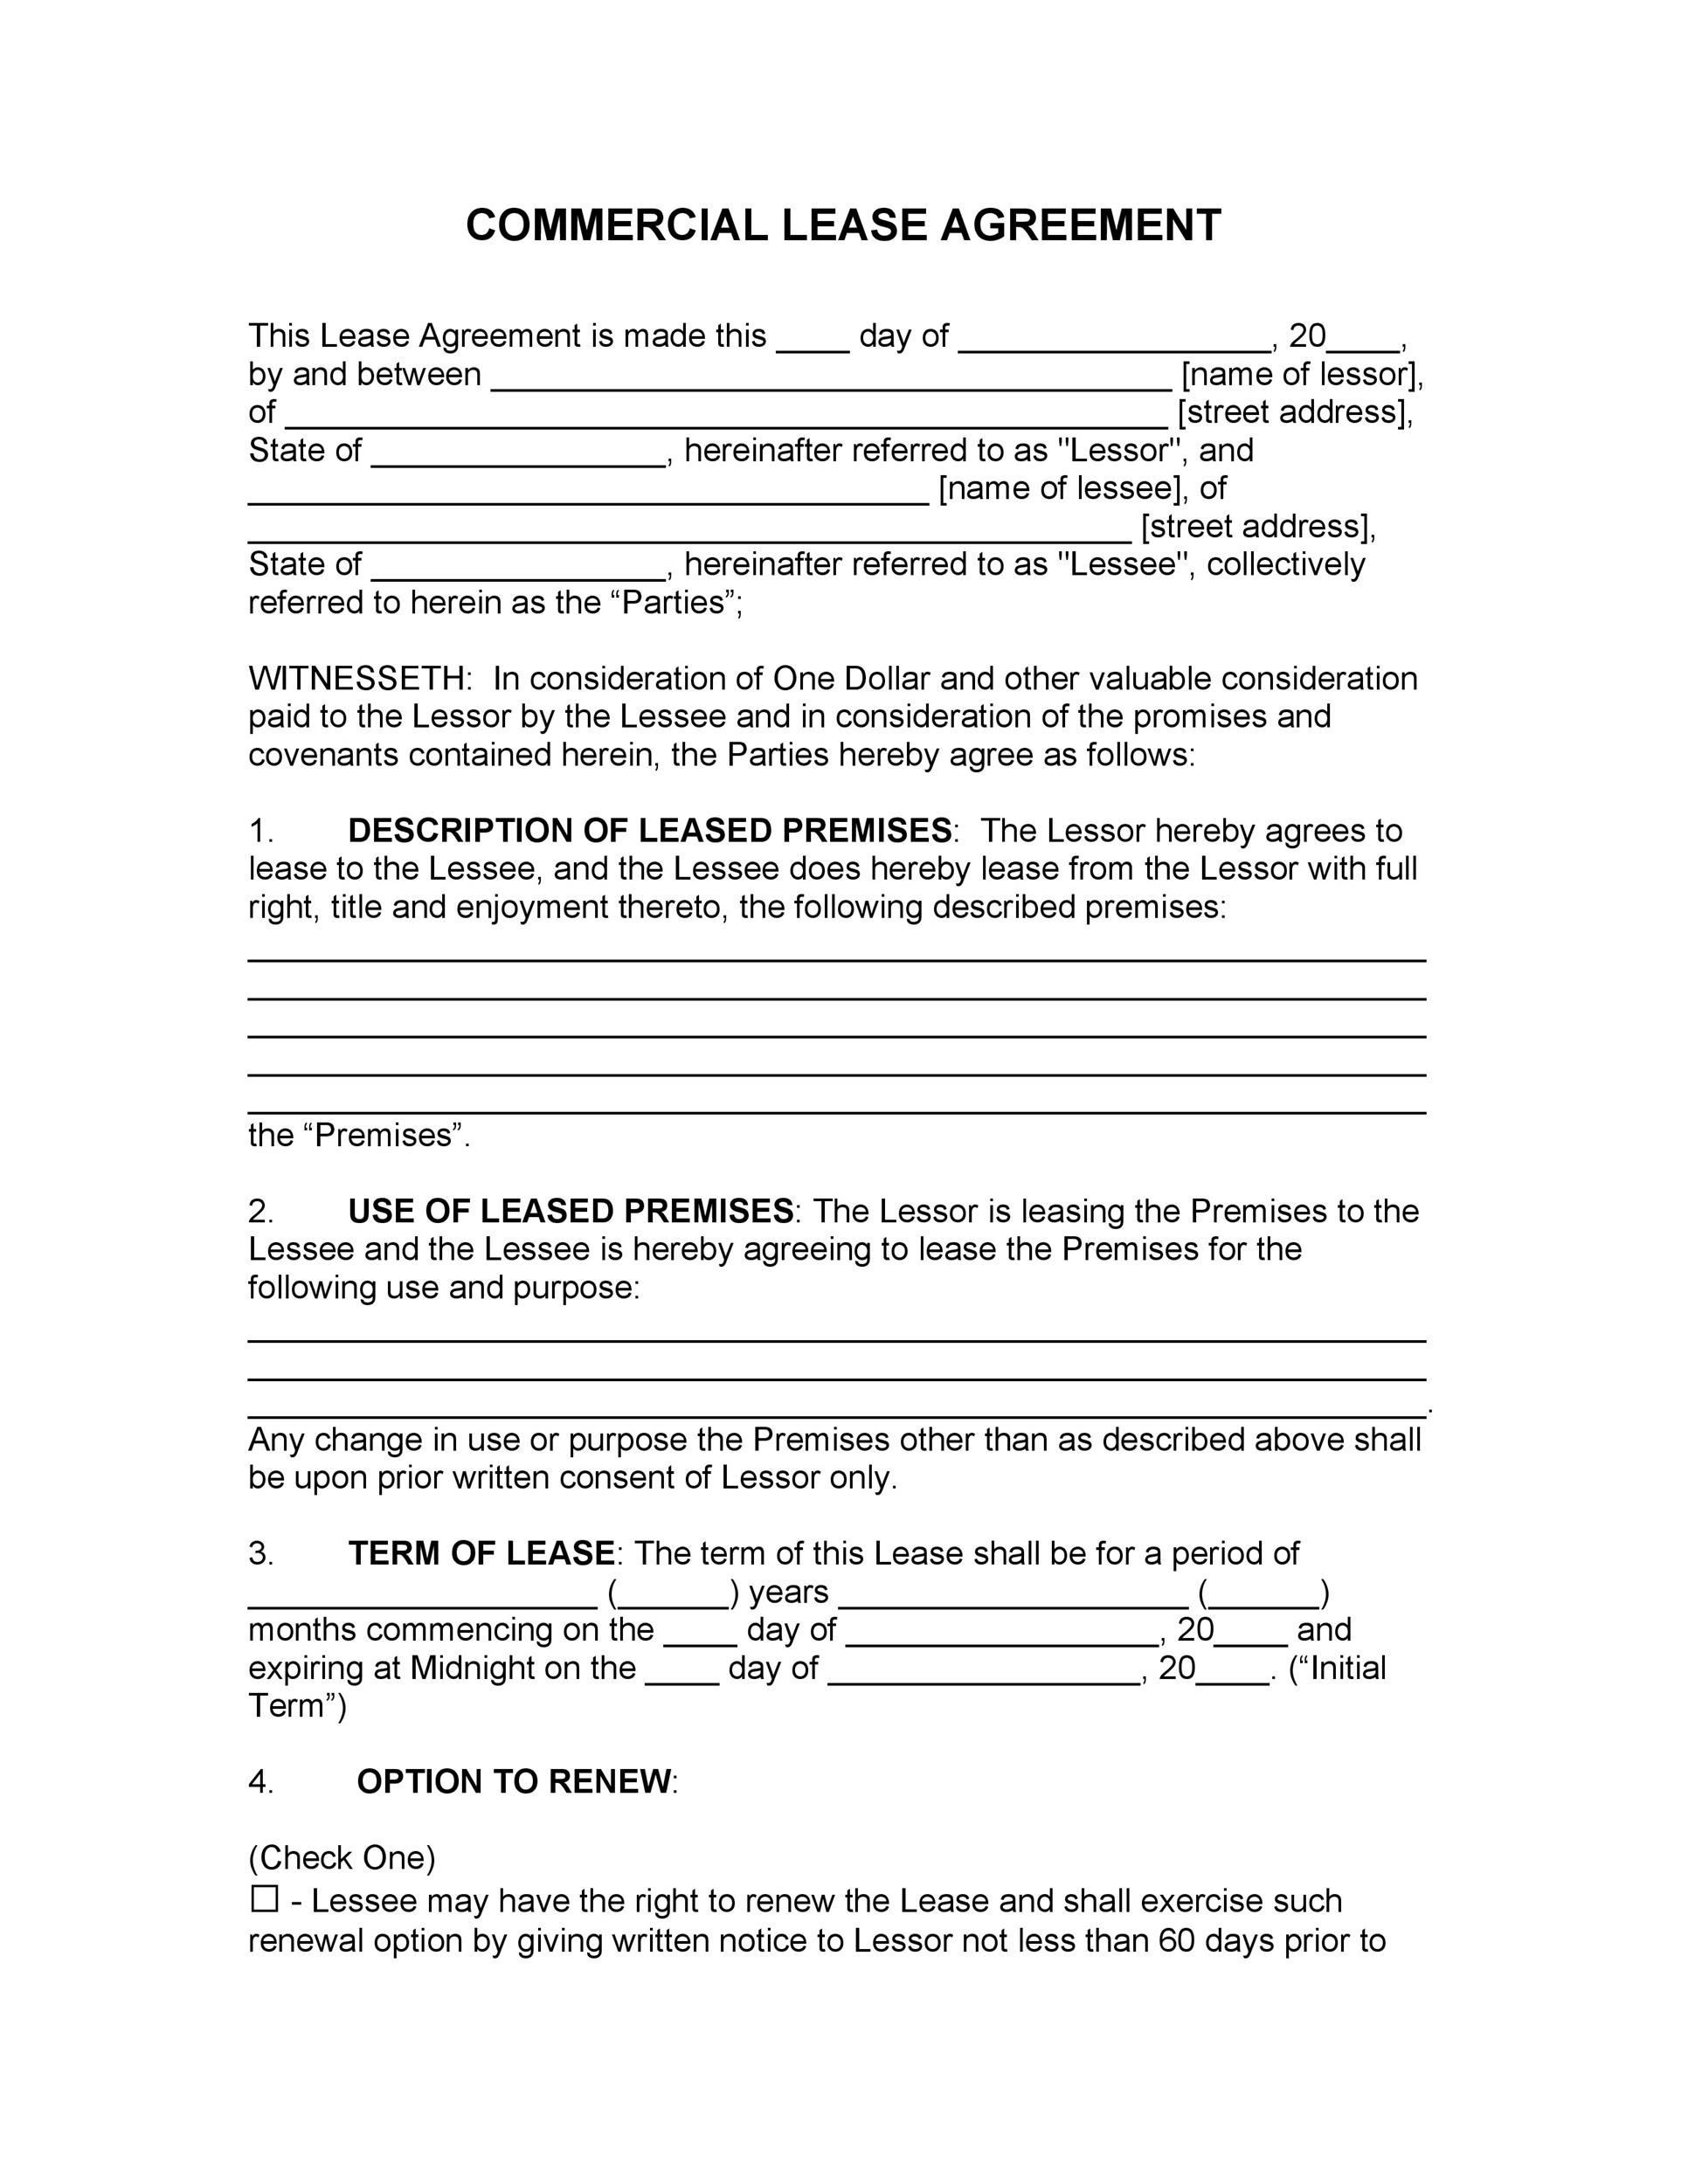 Sample Commercial Lease Agreement | 26 Free Commercial Lease Agreement Templates Template Lab